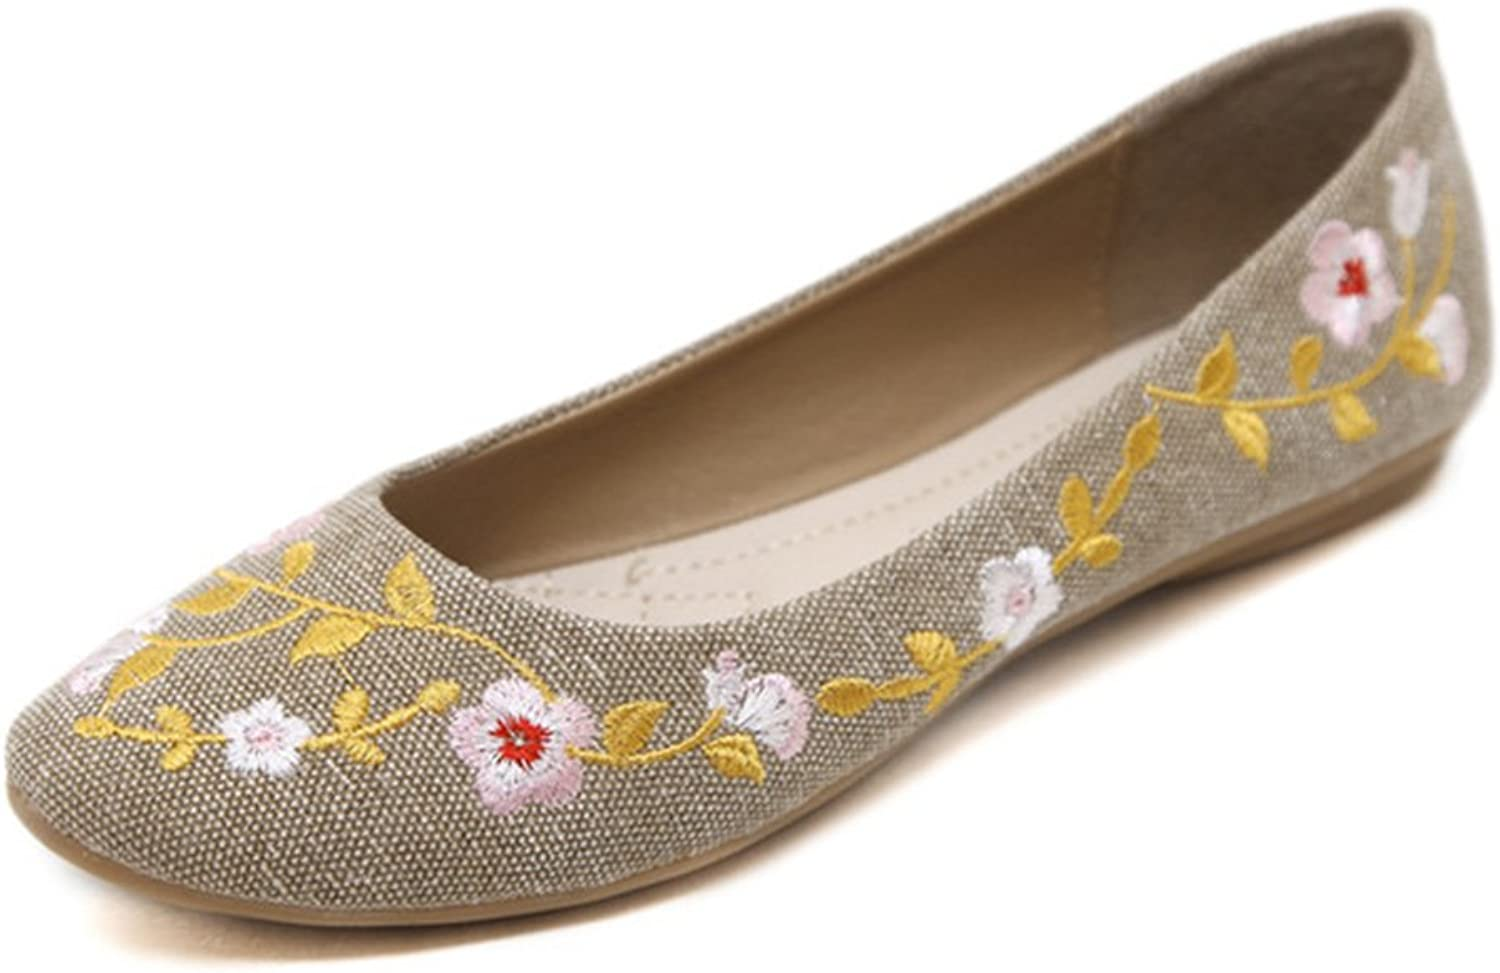 York Zhu Ballet Flats for Women, Slip on Comfortable Flower Embroidery Ladies shoes